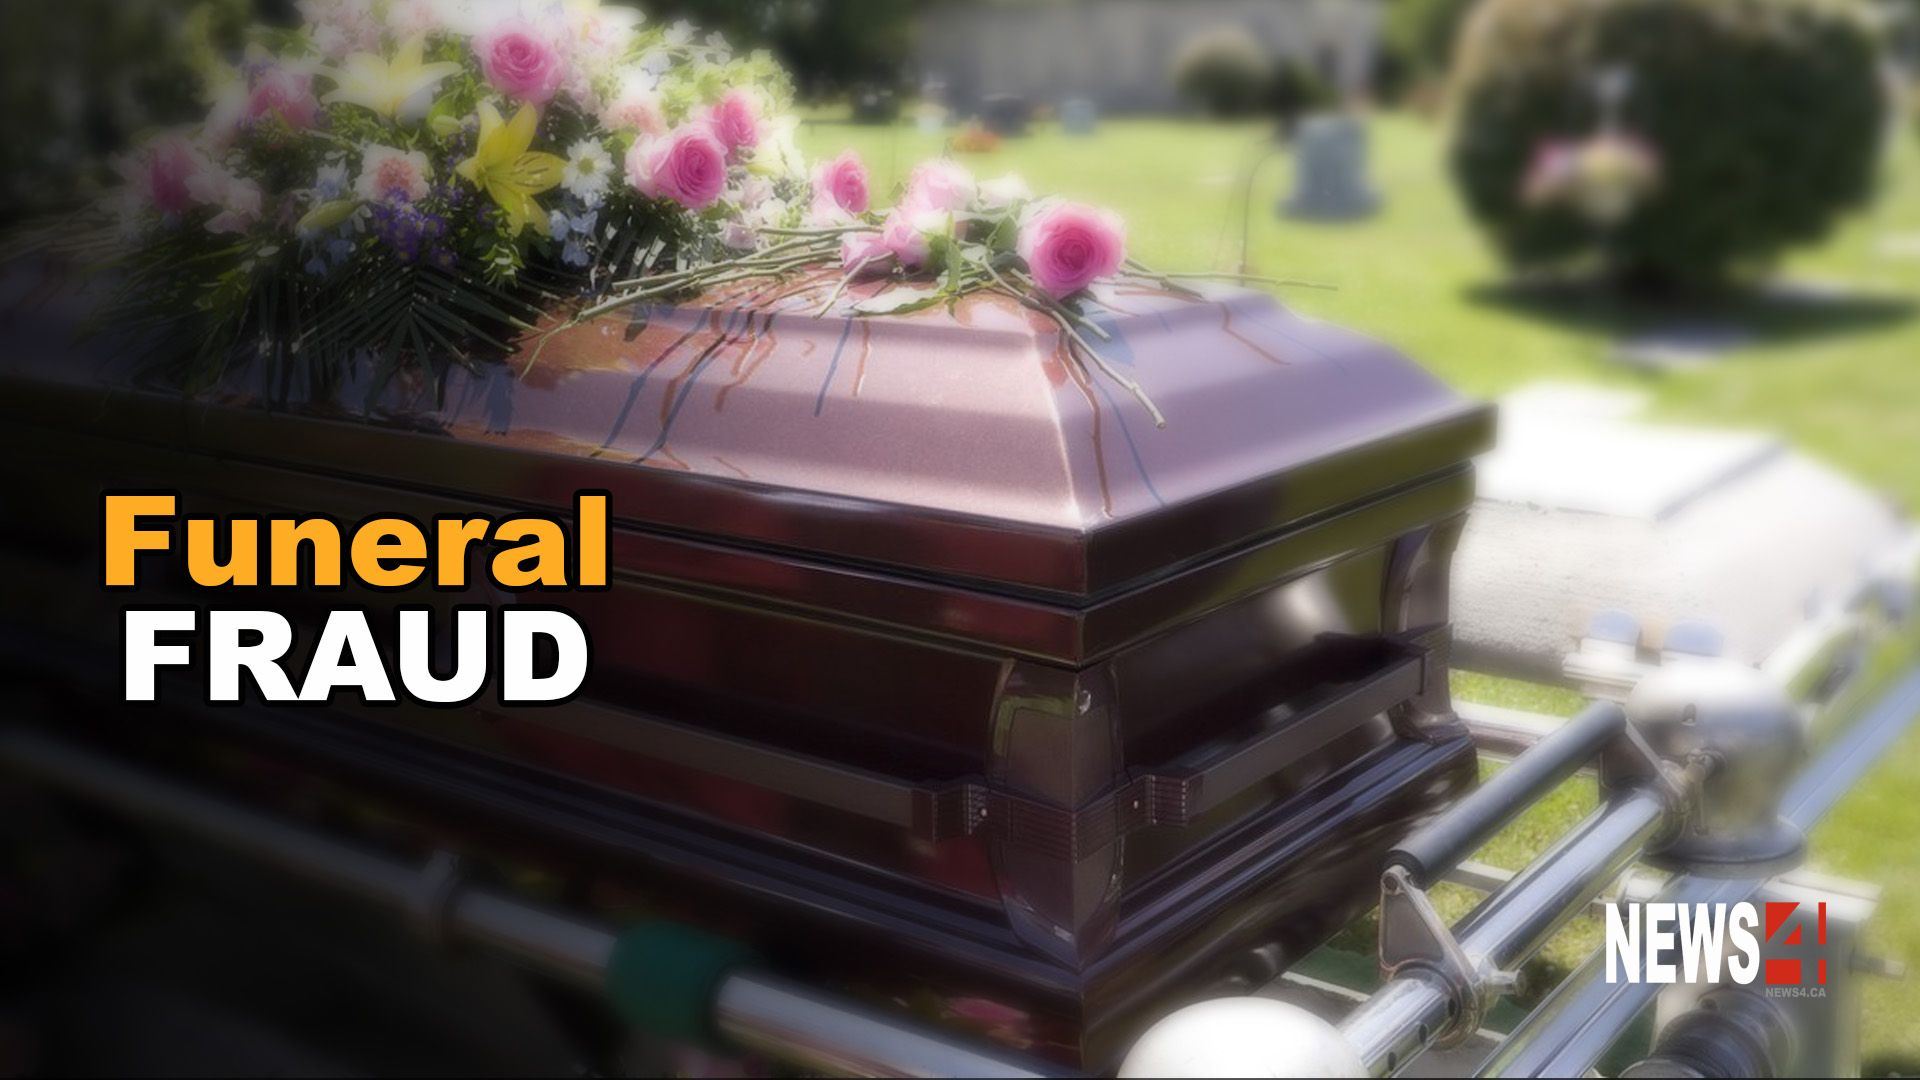 Former Funeral Director charged with fraud and